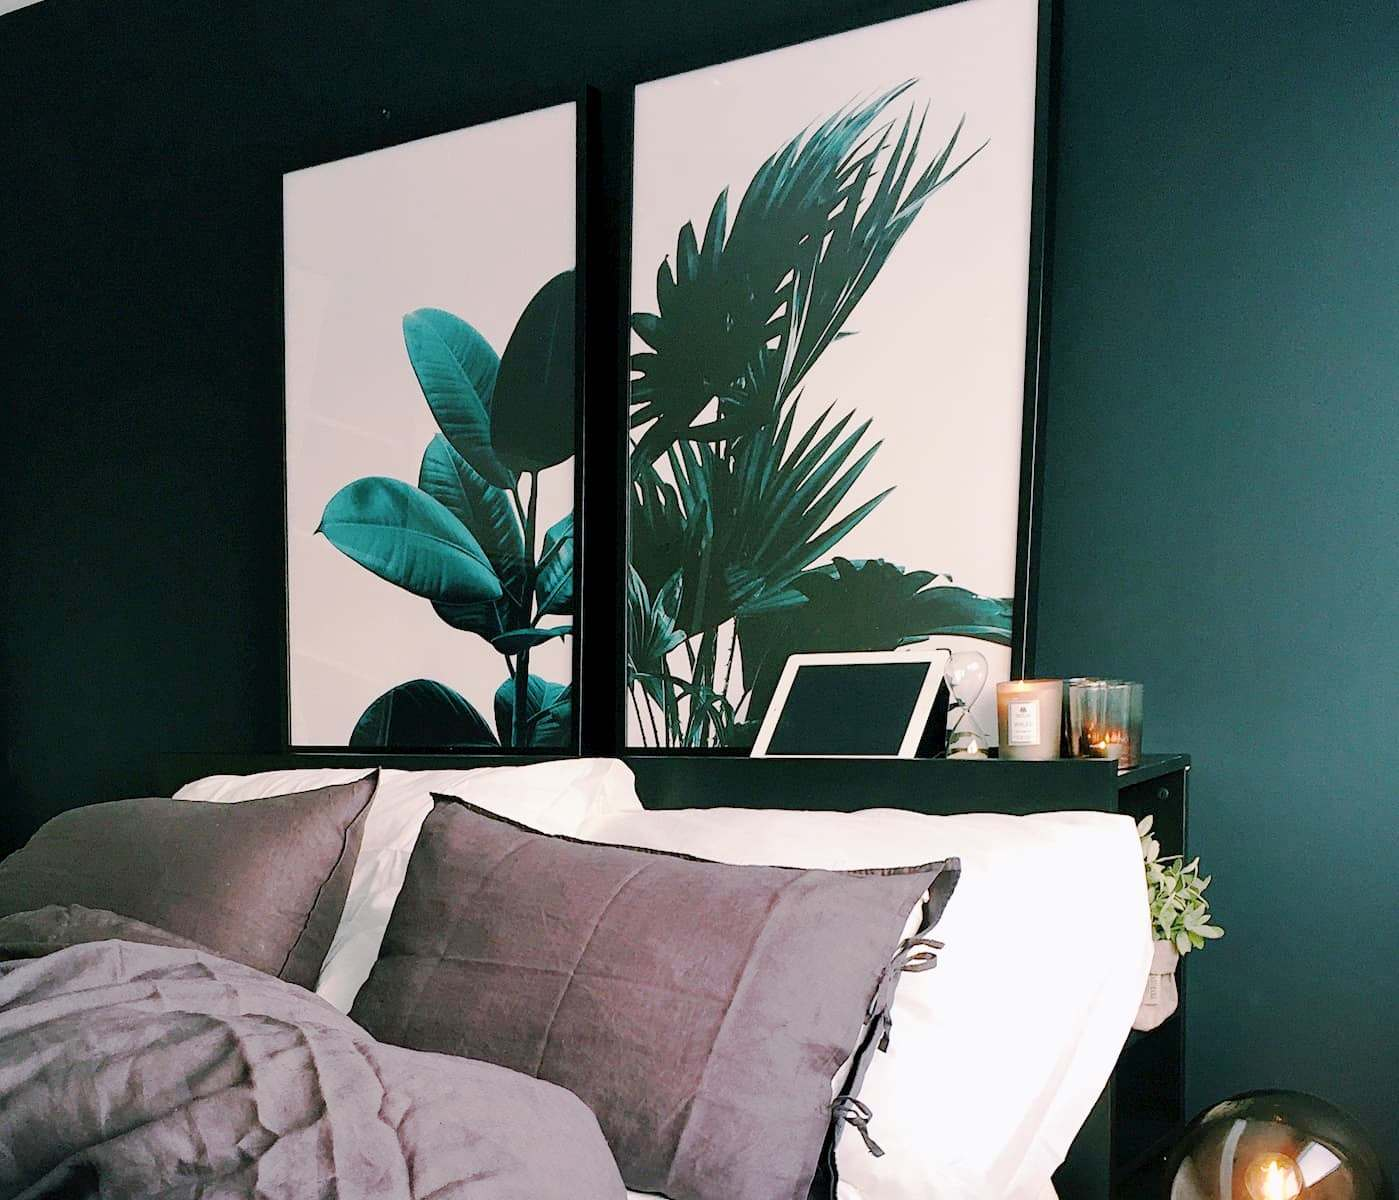 On a dark green wall on behind the backboard of a bed are two pictures showing large, green leaves on a white background